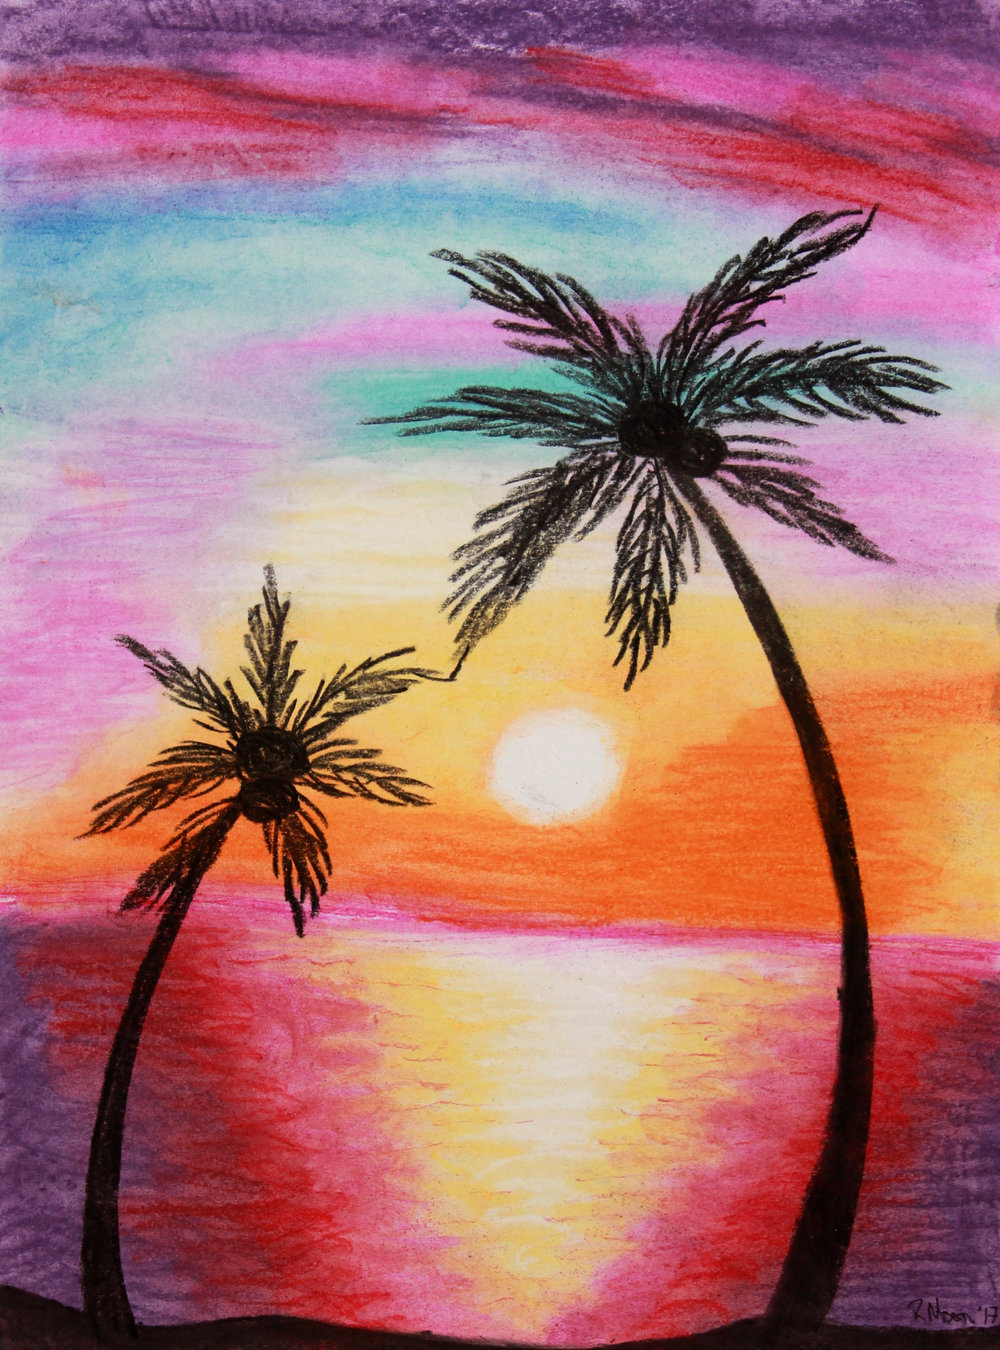 Roanna-Tropic Sunset.jpg